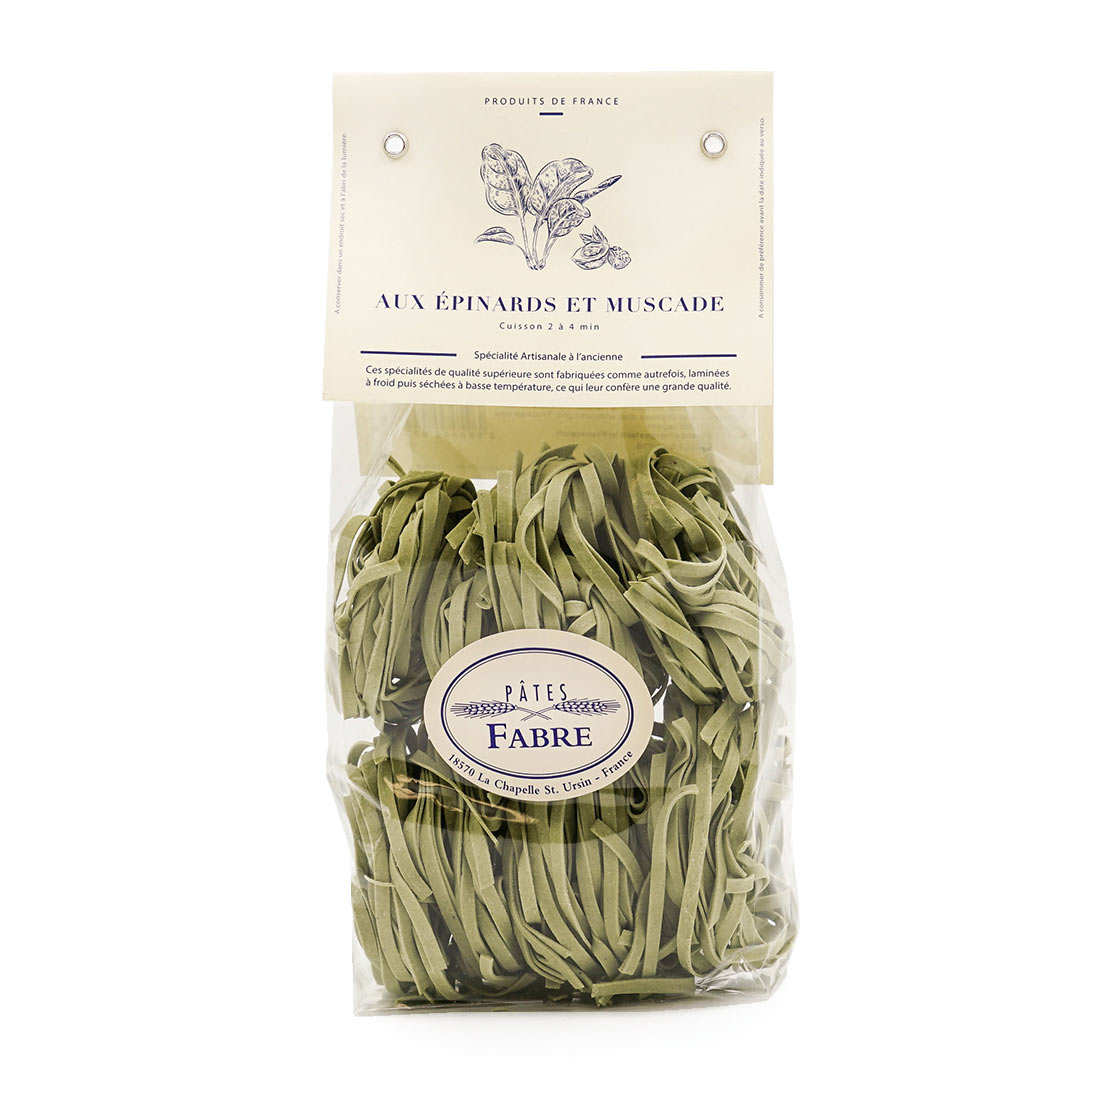 Spinach and nutmeg flavoured pasta